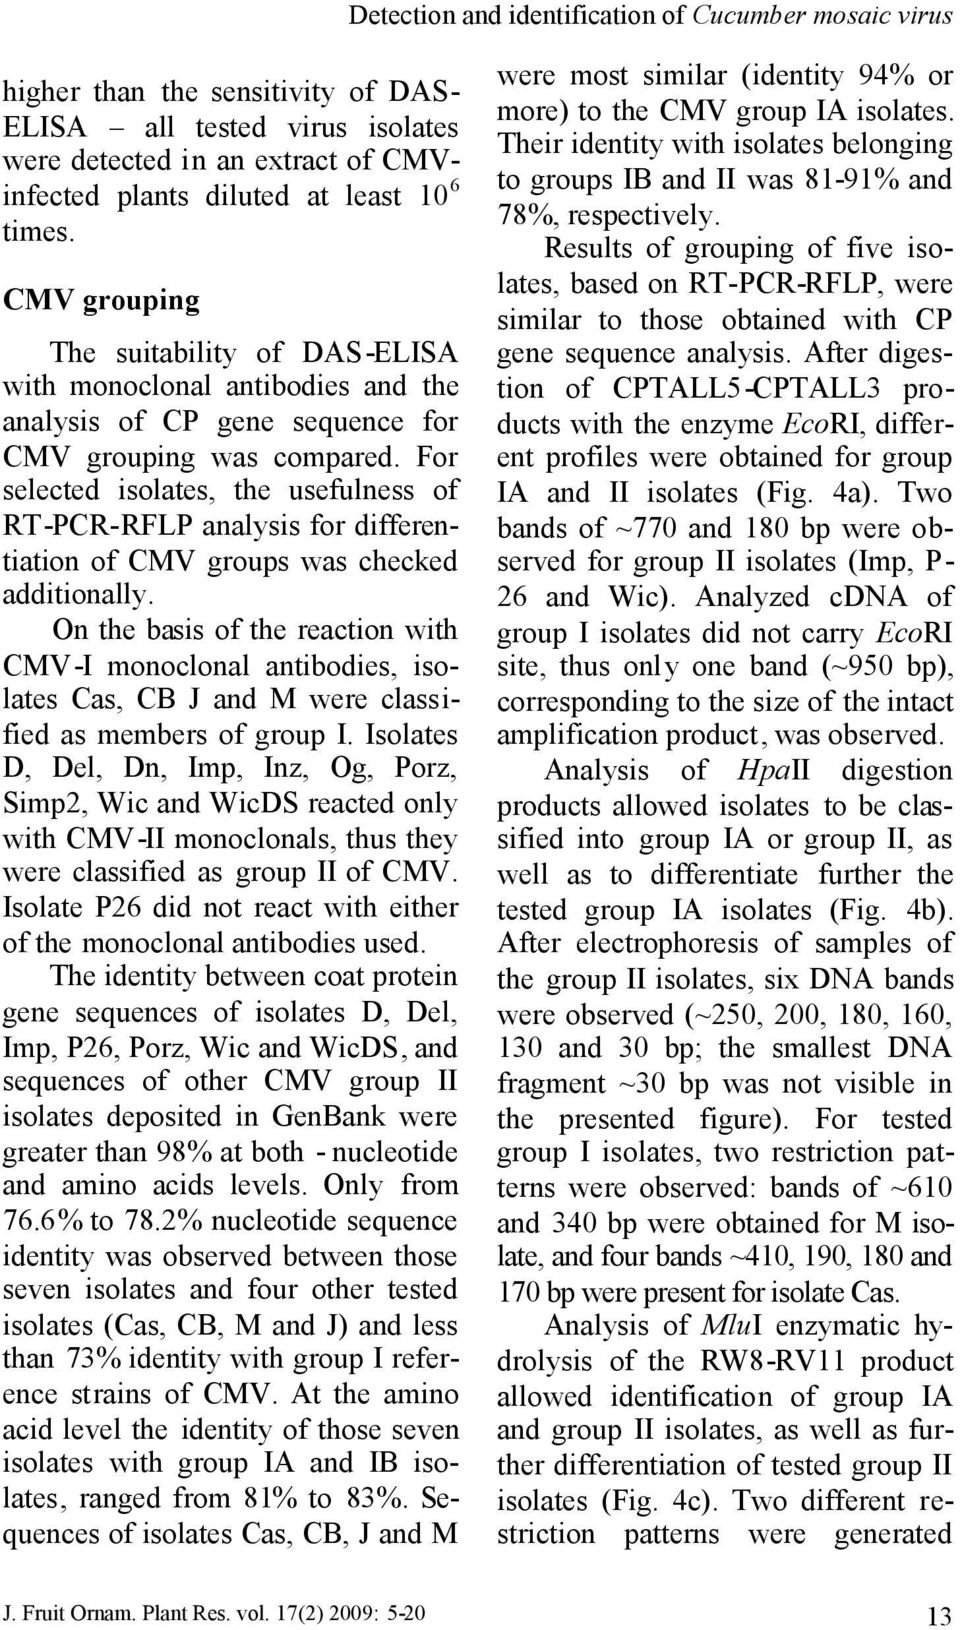 For selected isolates, the usefulness of RT-PCR-RFLP analysis for differentiation of CMV groups was checked additionally.